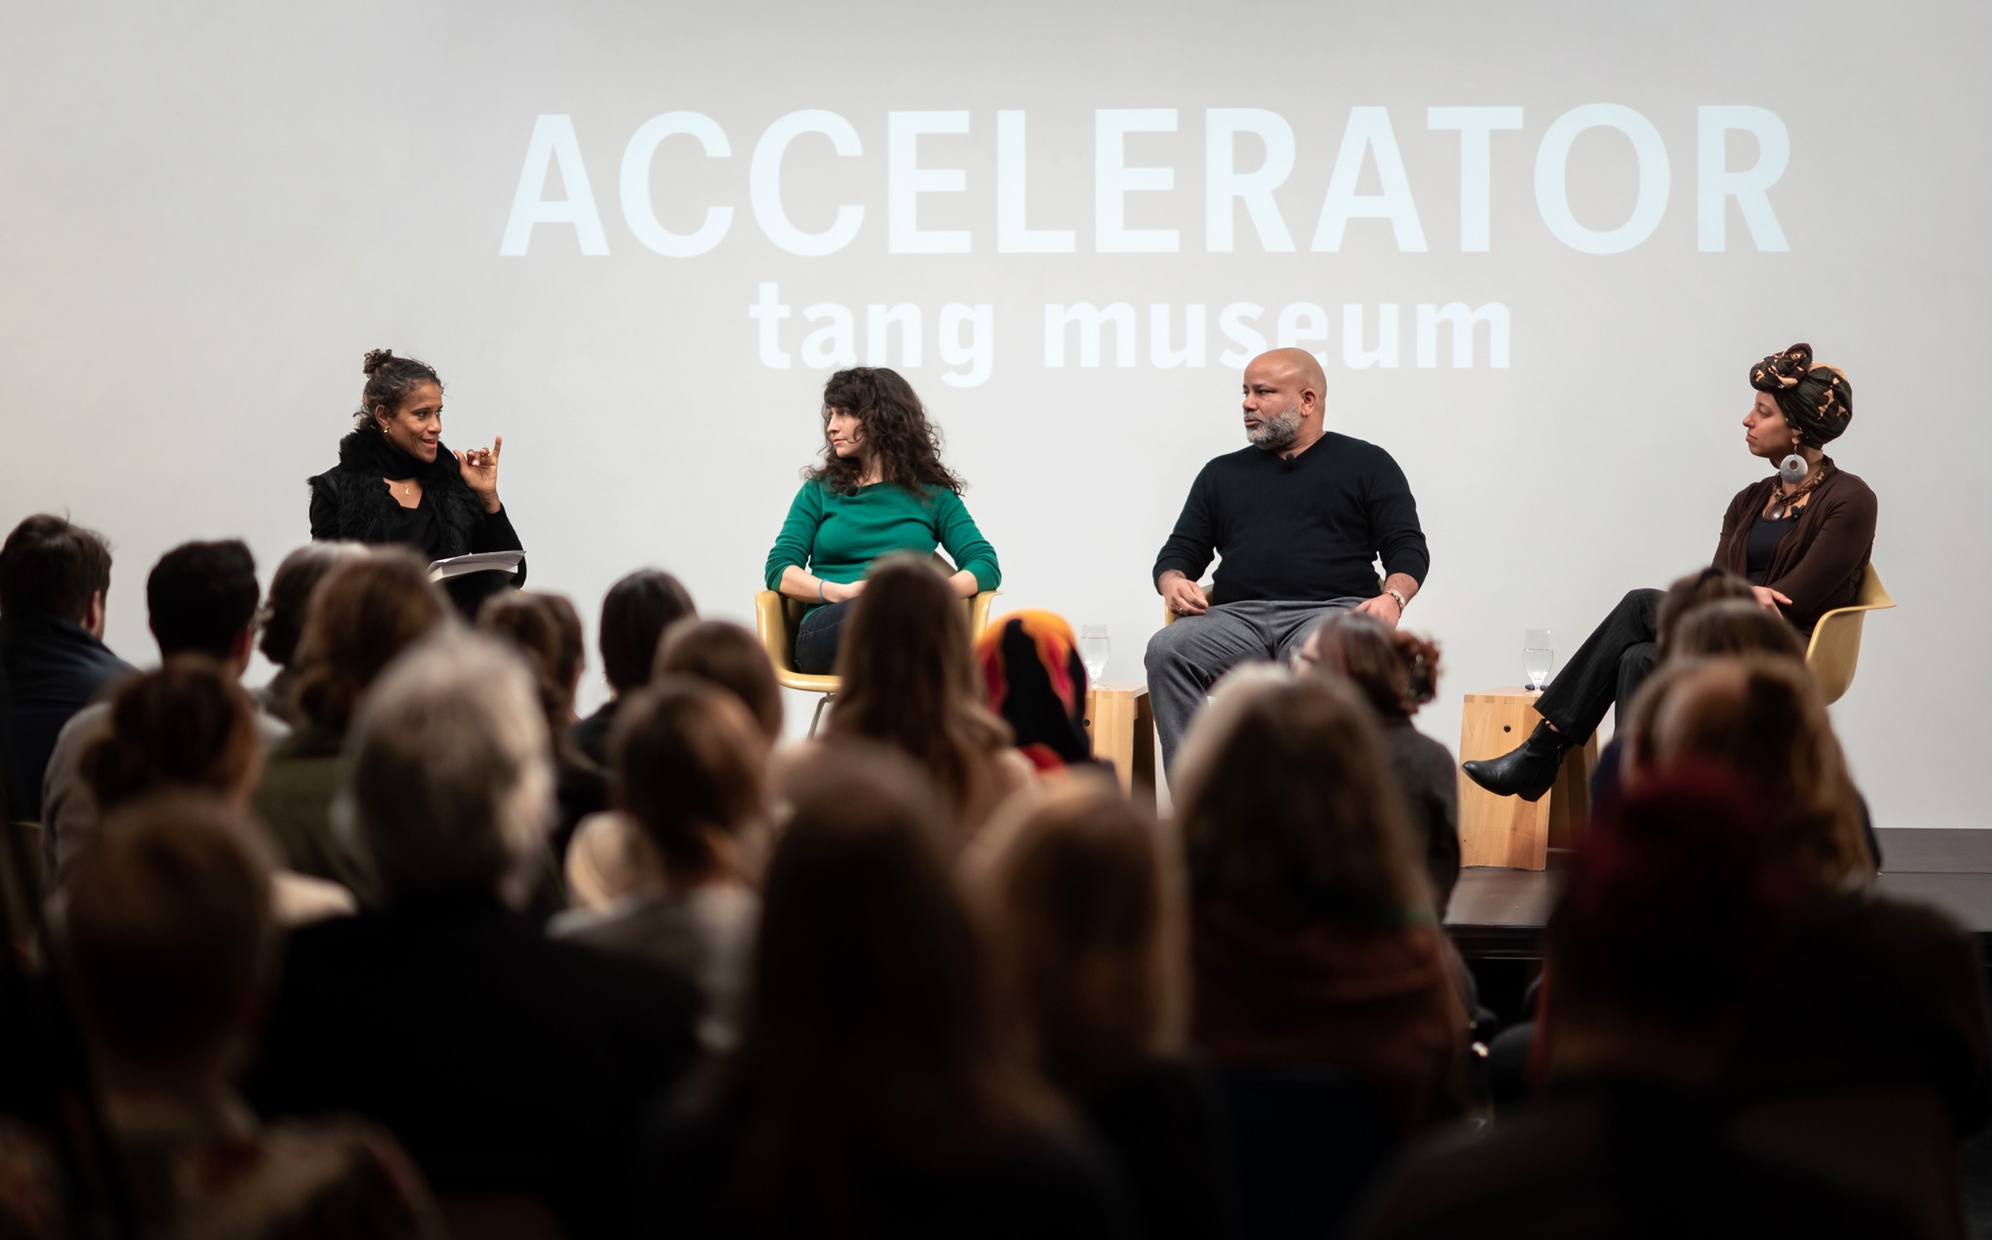 "Four people, two black women, one black man, and one white woman, sit on a stage in front of a crowd with the words ""ACCELERATOR tang museum"" projected behind them."